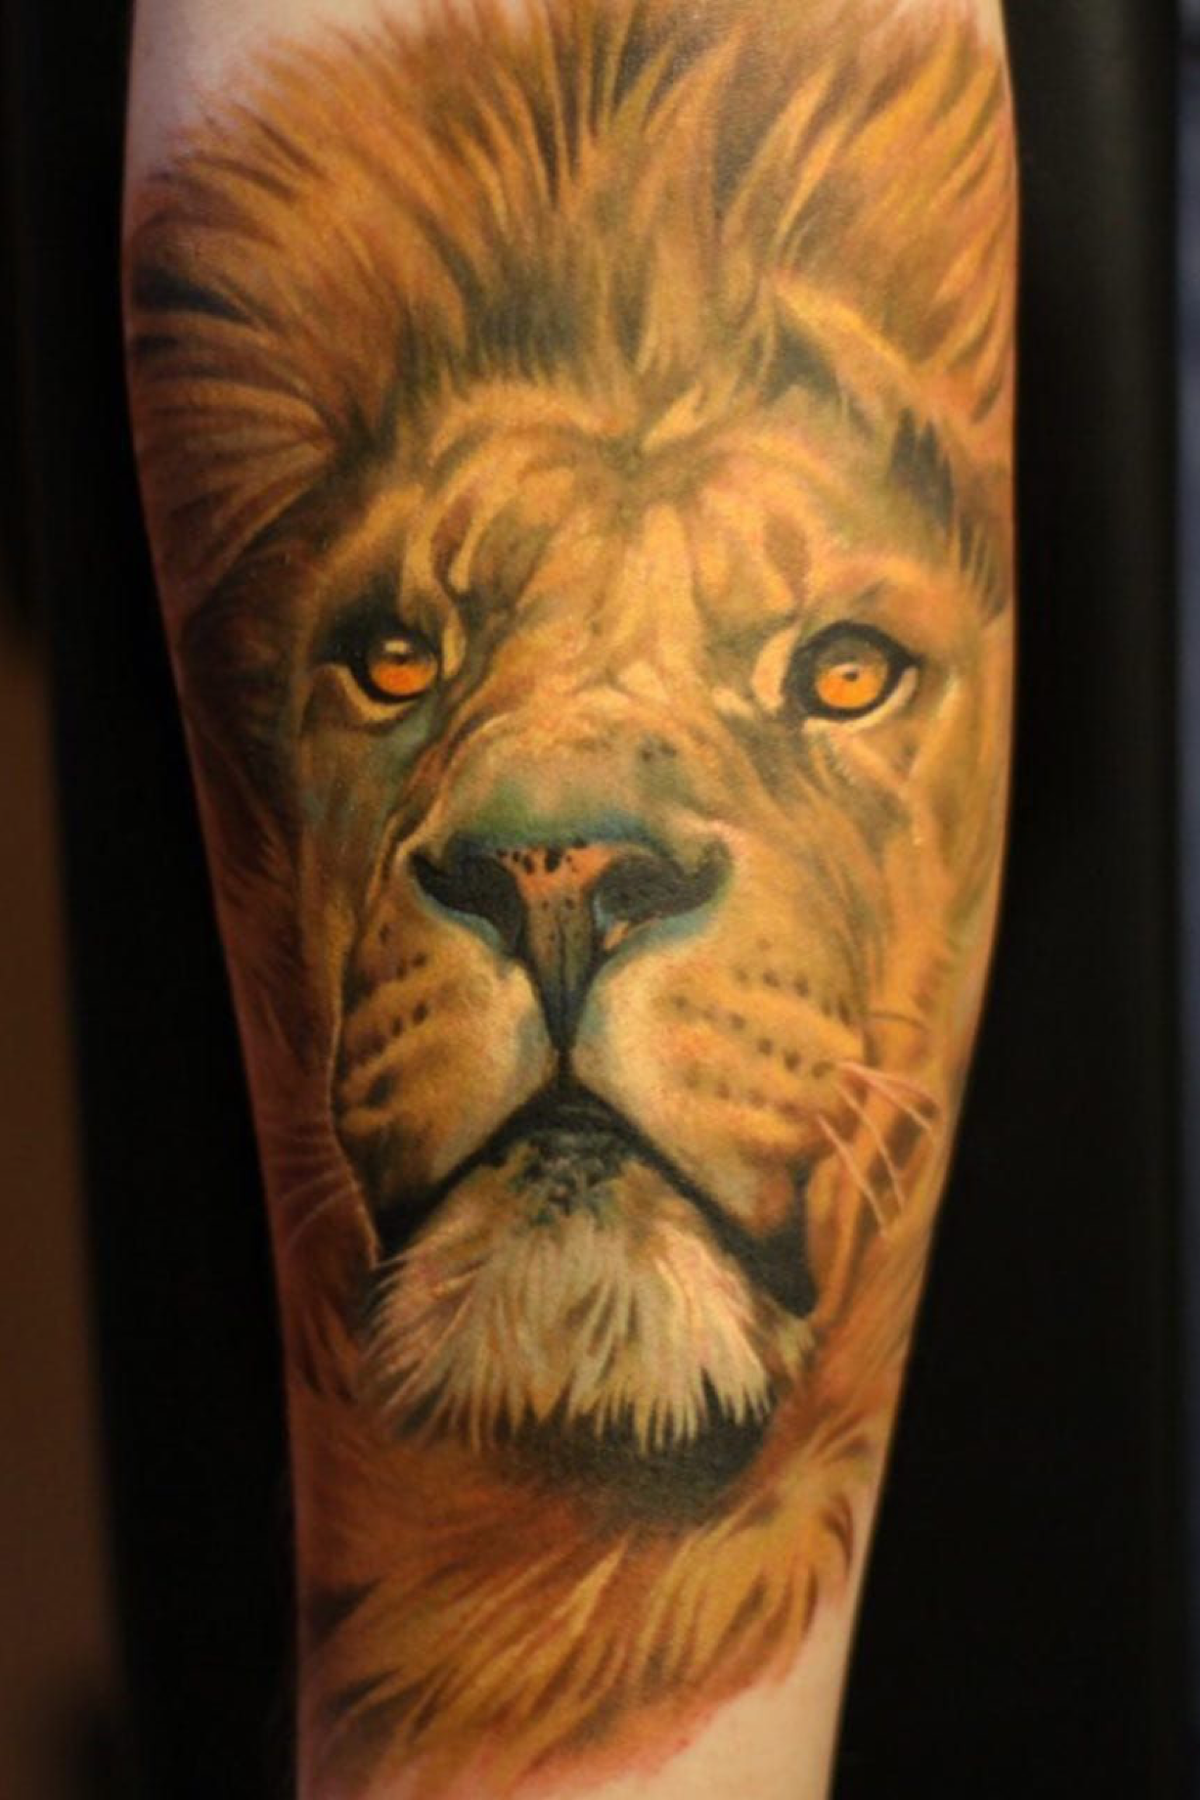 Realistic Color Lion Portrait Tattoo Made By Giena Revess A Traveling Tattoo Artist Sleeve Tattoo In 2020 Portrait Tattoo Tattoo Artists Wildlife Tattoo